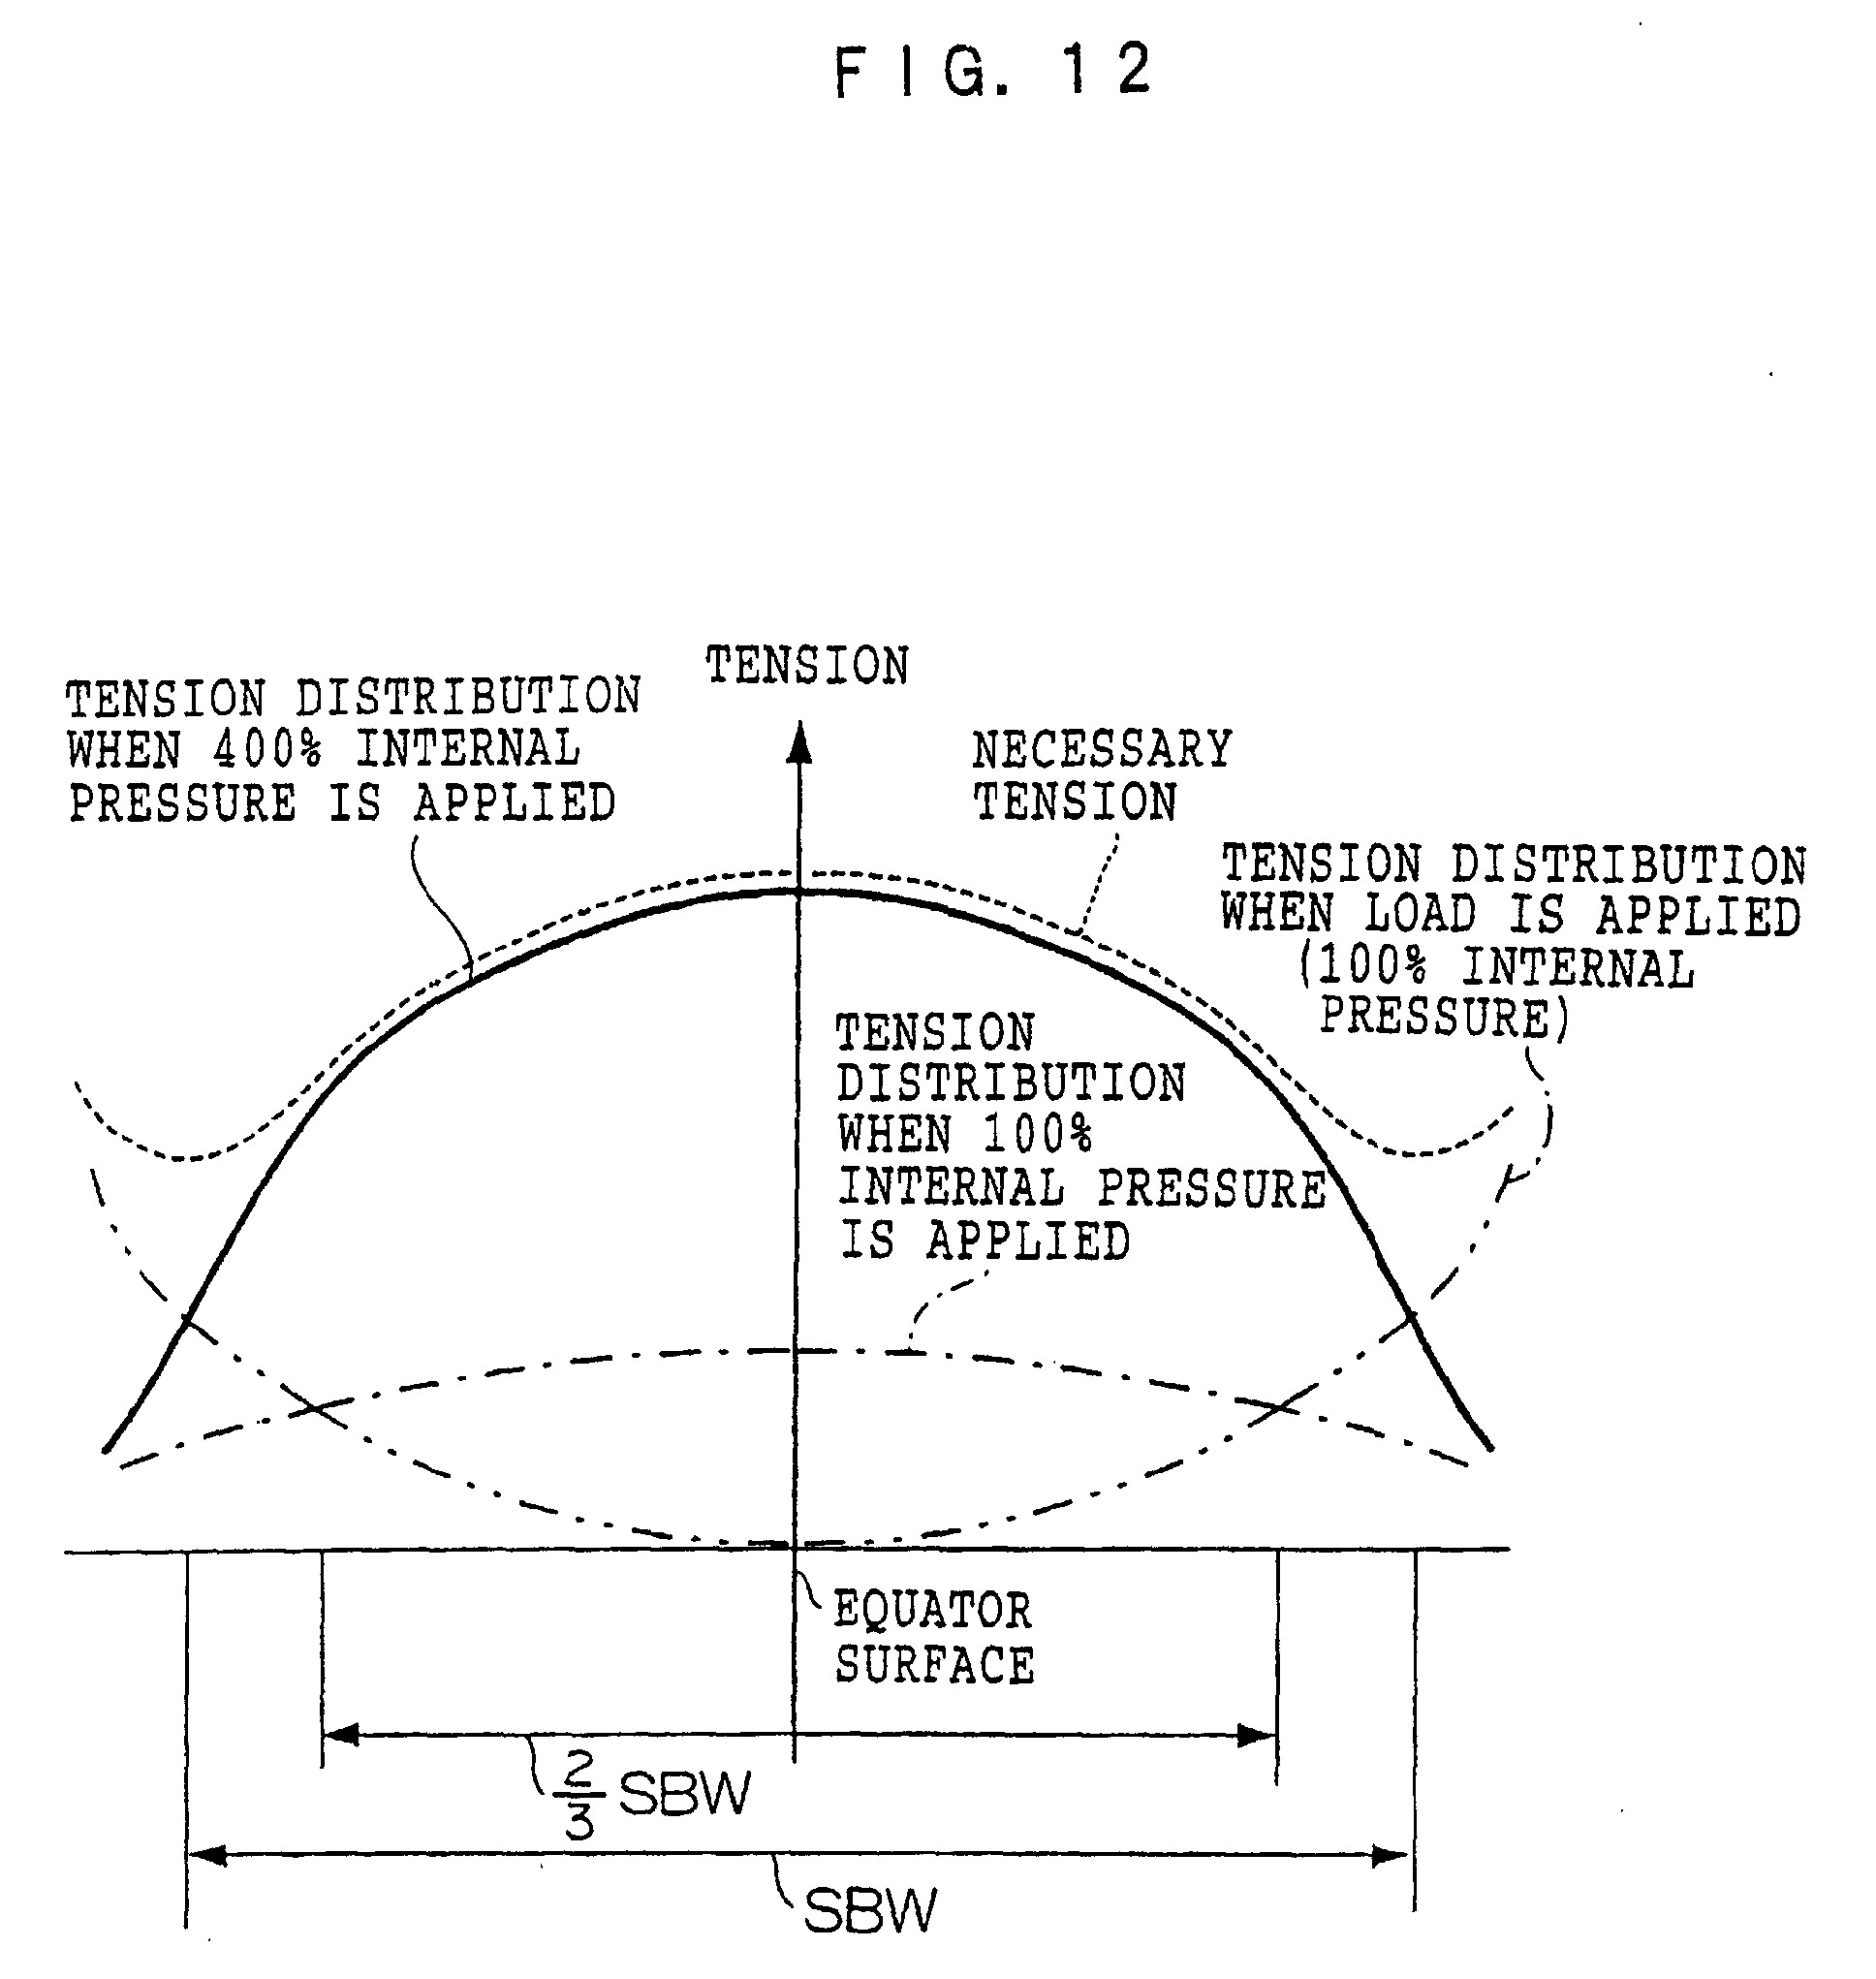 Radial Tire Rotation Diagram Patent Ep A1 Pneumatic Radial Tire and Method Of Producing Of Radial Tire Rotation Diagram